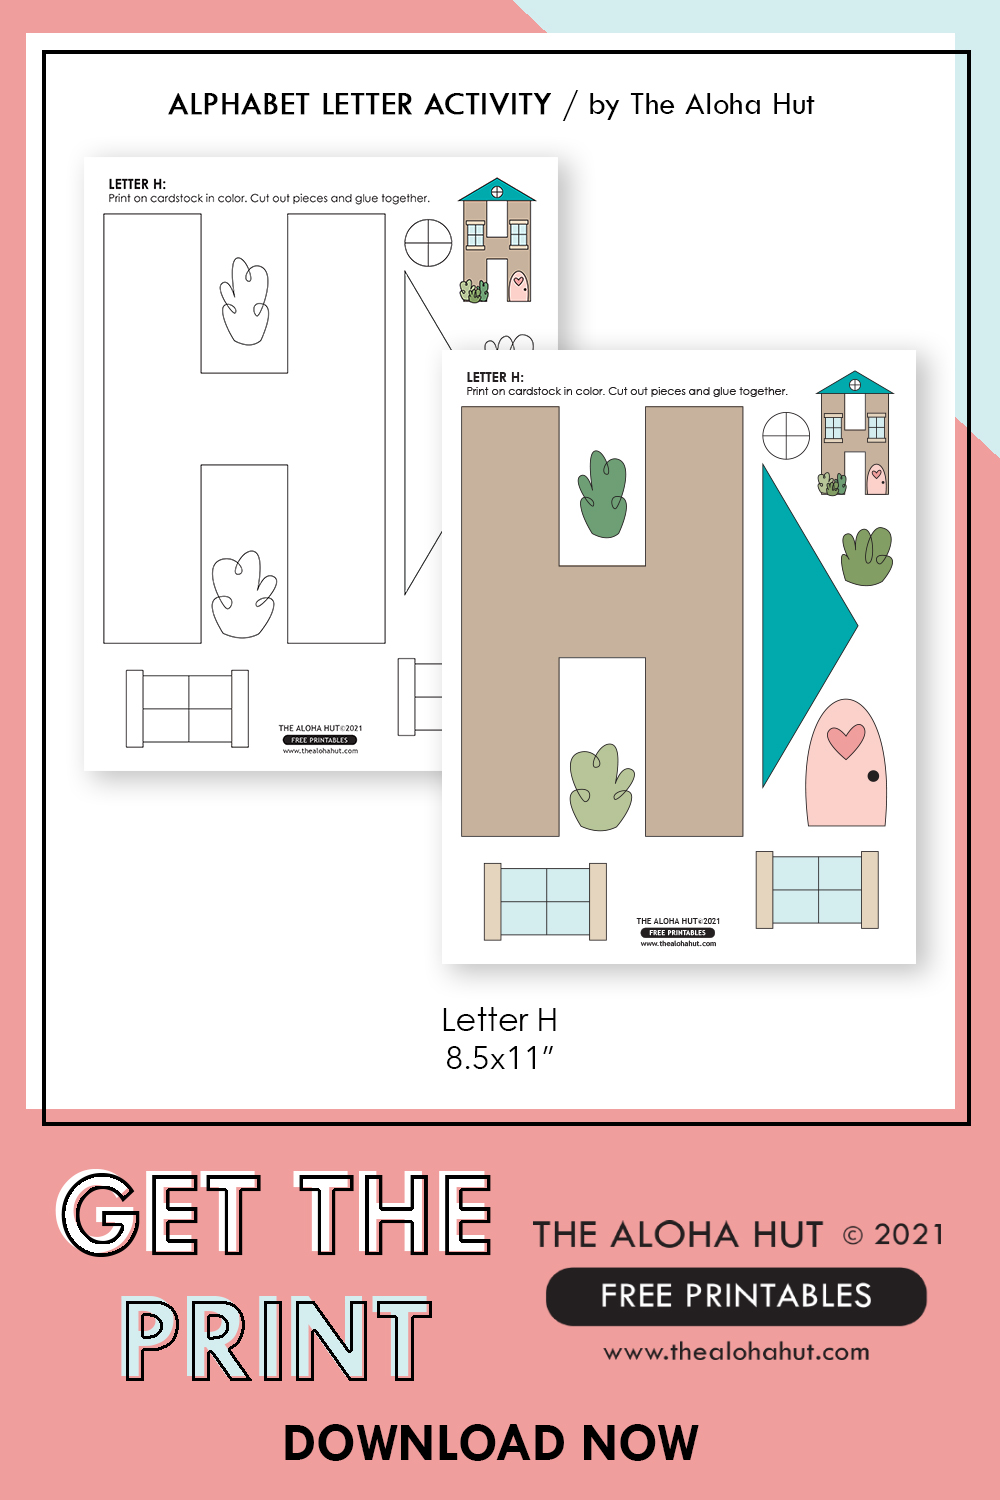 Alphabet Letter Crafts - Letter H - free printable 2 by the Aloha Hut